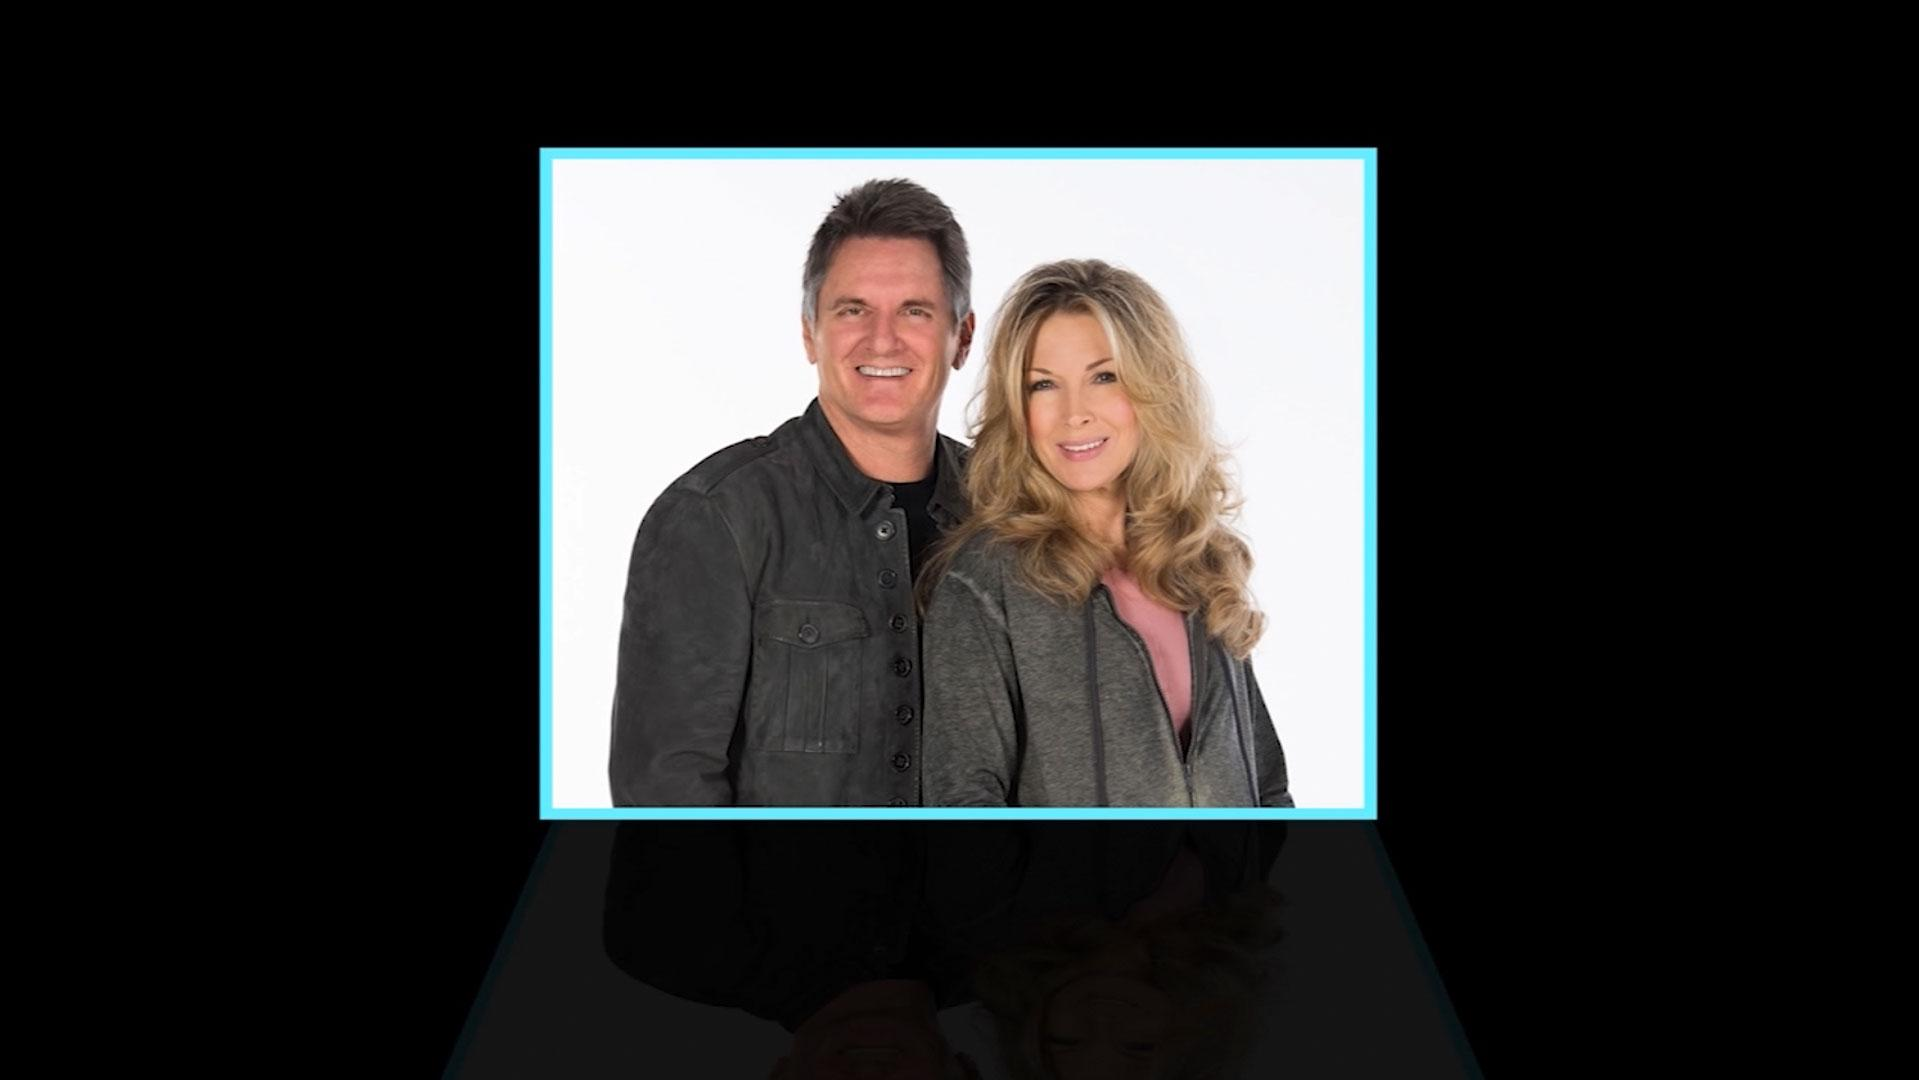 TBN's Matt and Laurie Crouch Introduce the Hillsong Channel